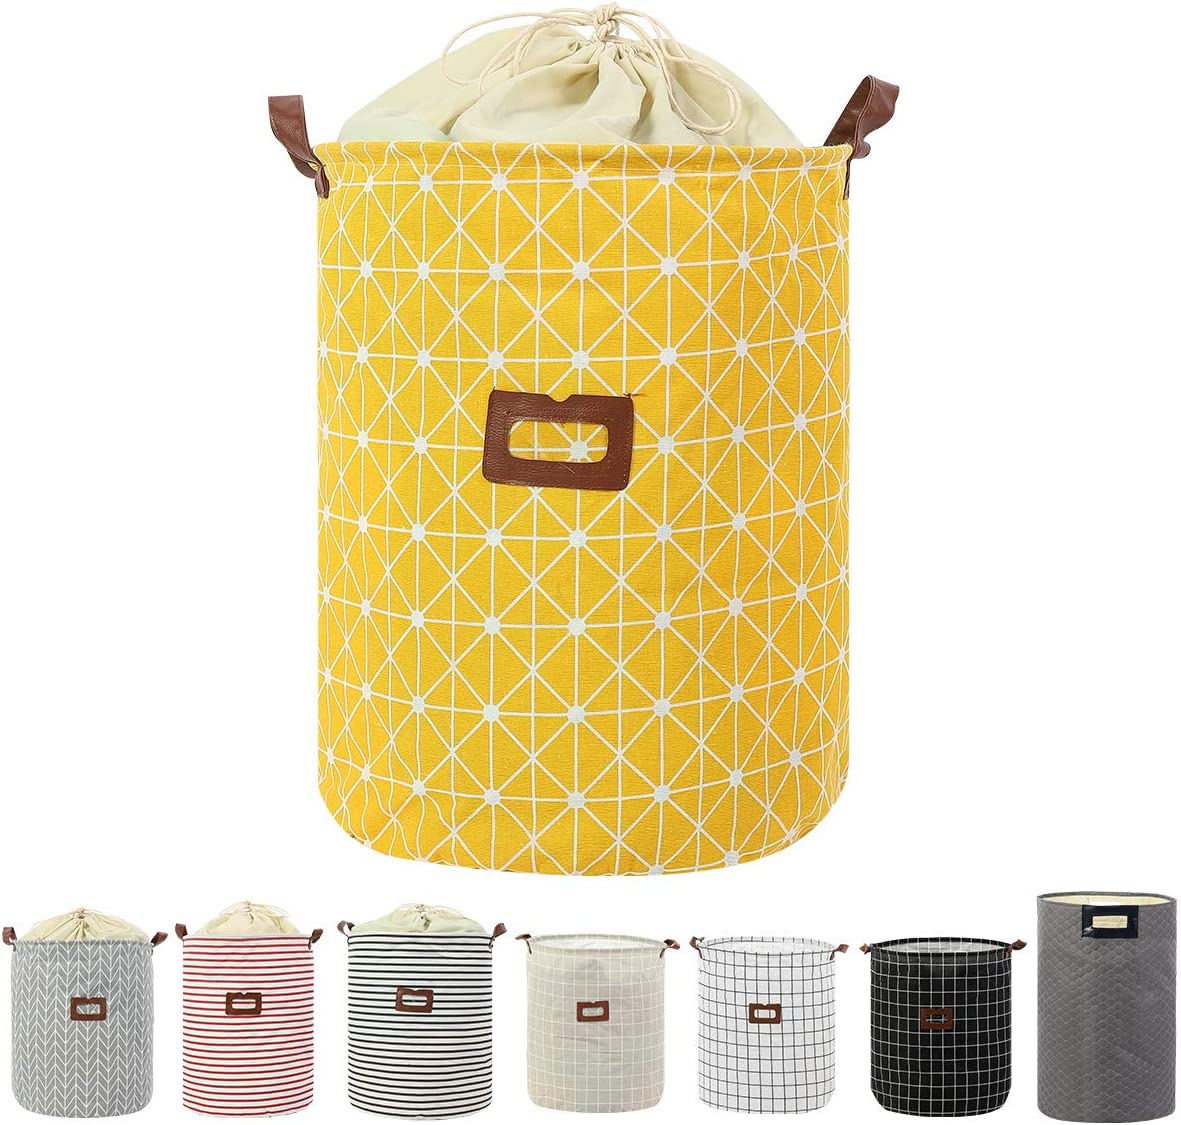 Clothes Laundry Hamper Storage Bin Large Collapsible Storage Basket Kids Canvas Laundry Basket for Home Bedroom Nursery Room (PATTERN-04)